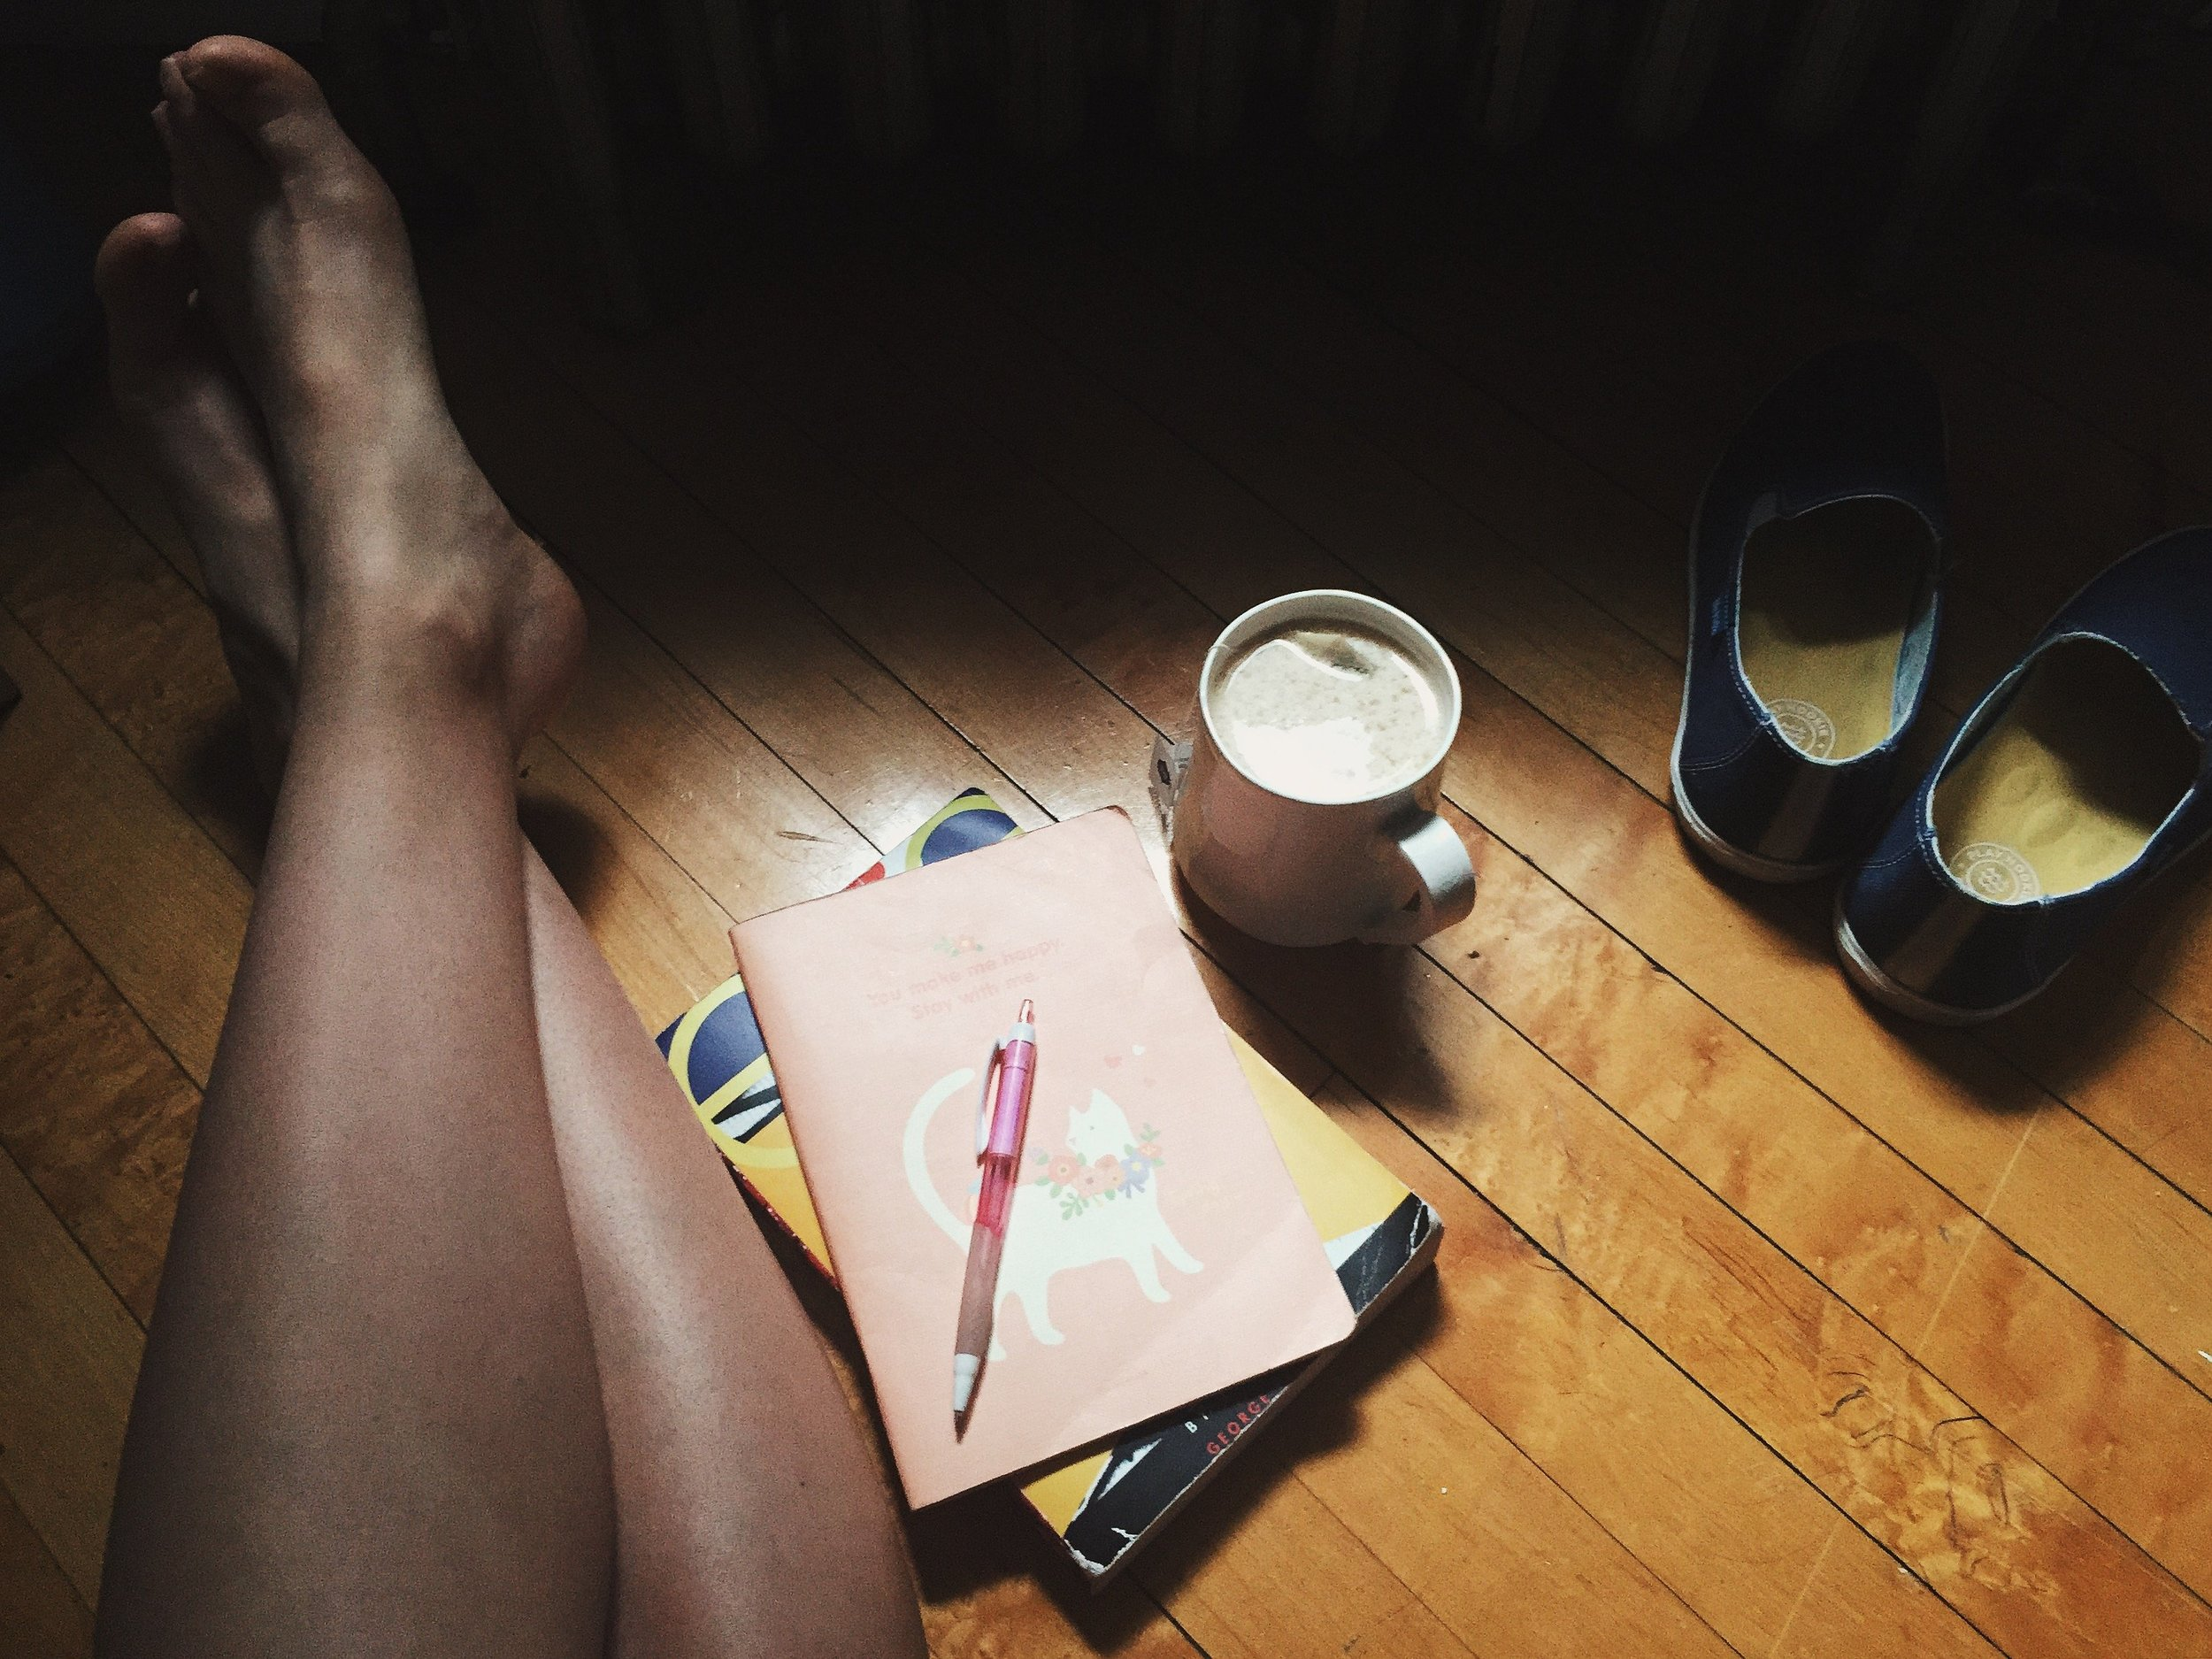 """""""Weekday mornings I usually start with a cup of tea. This photo represents getting up in the morning and being quiet with my thoughts before the craziness of the day starts."""""""